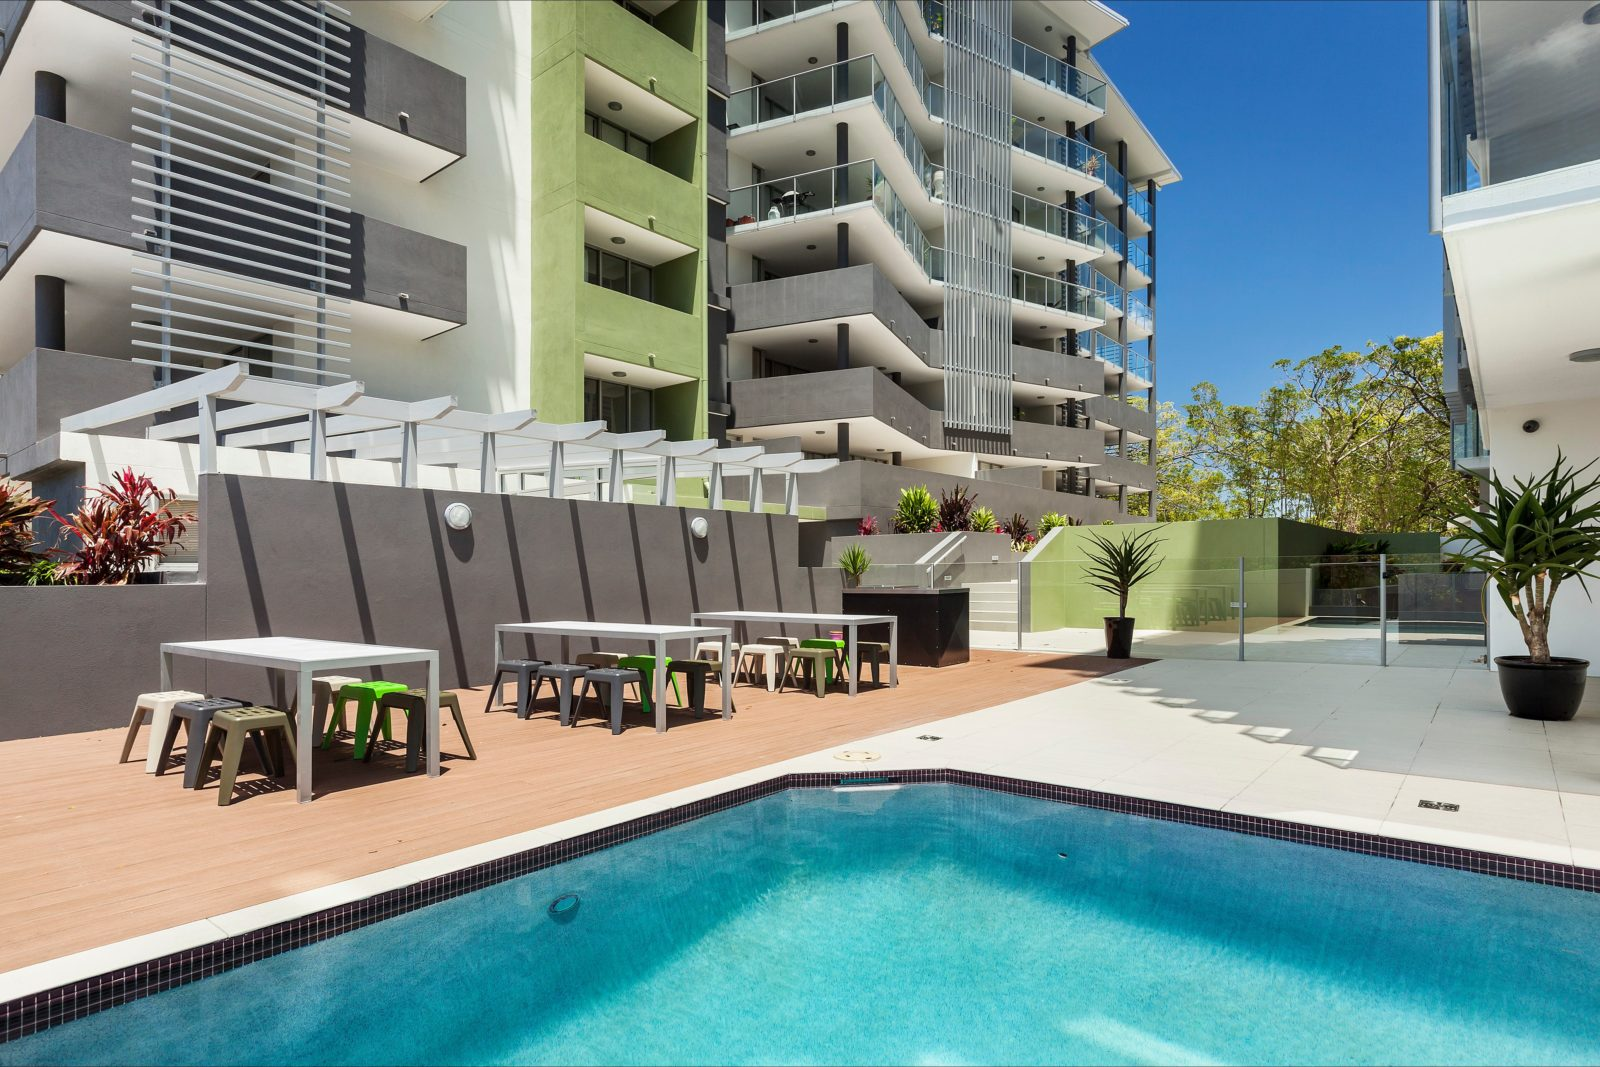 Outdoor swimming pool, with sundeck and BBQ area